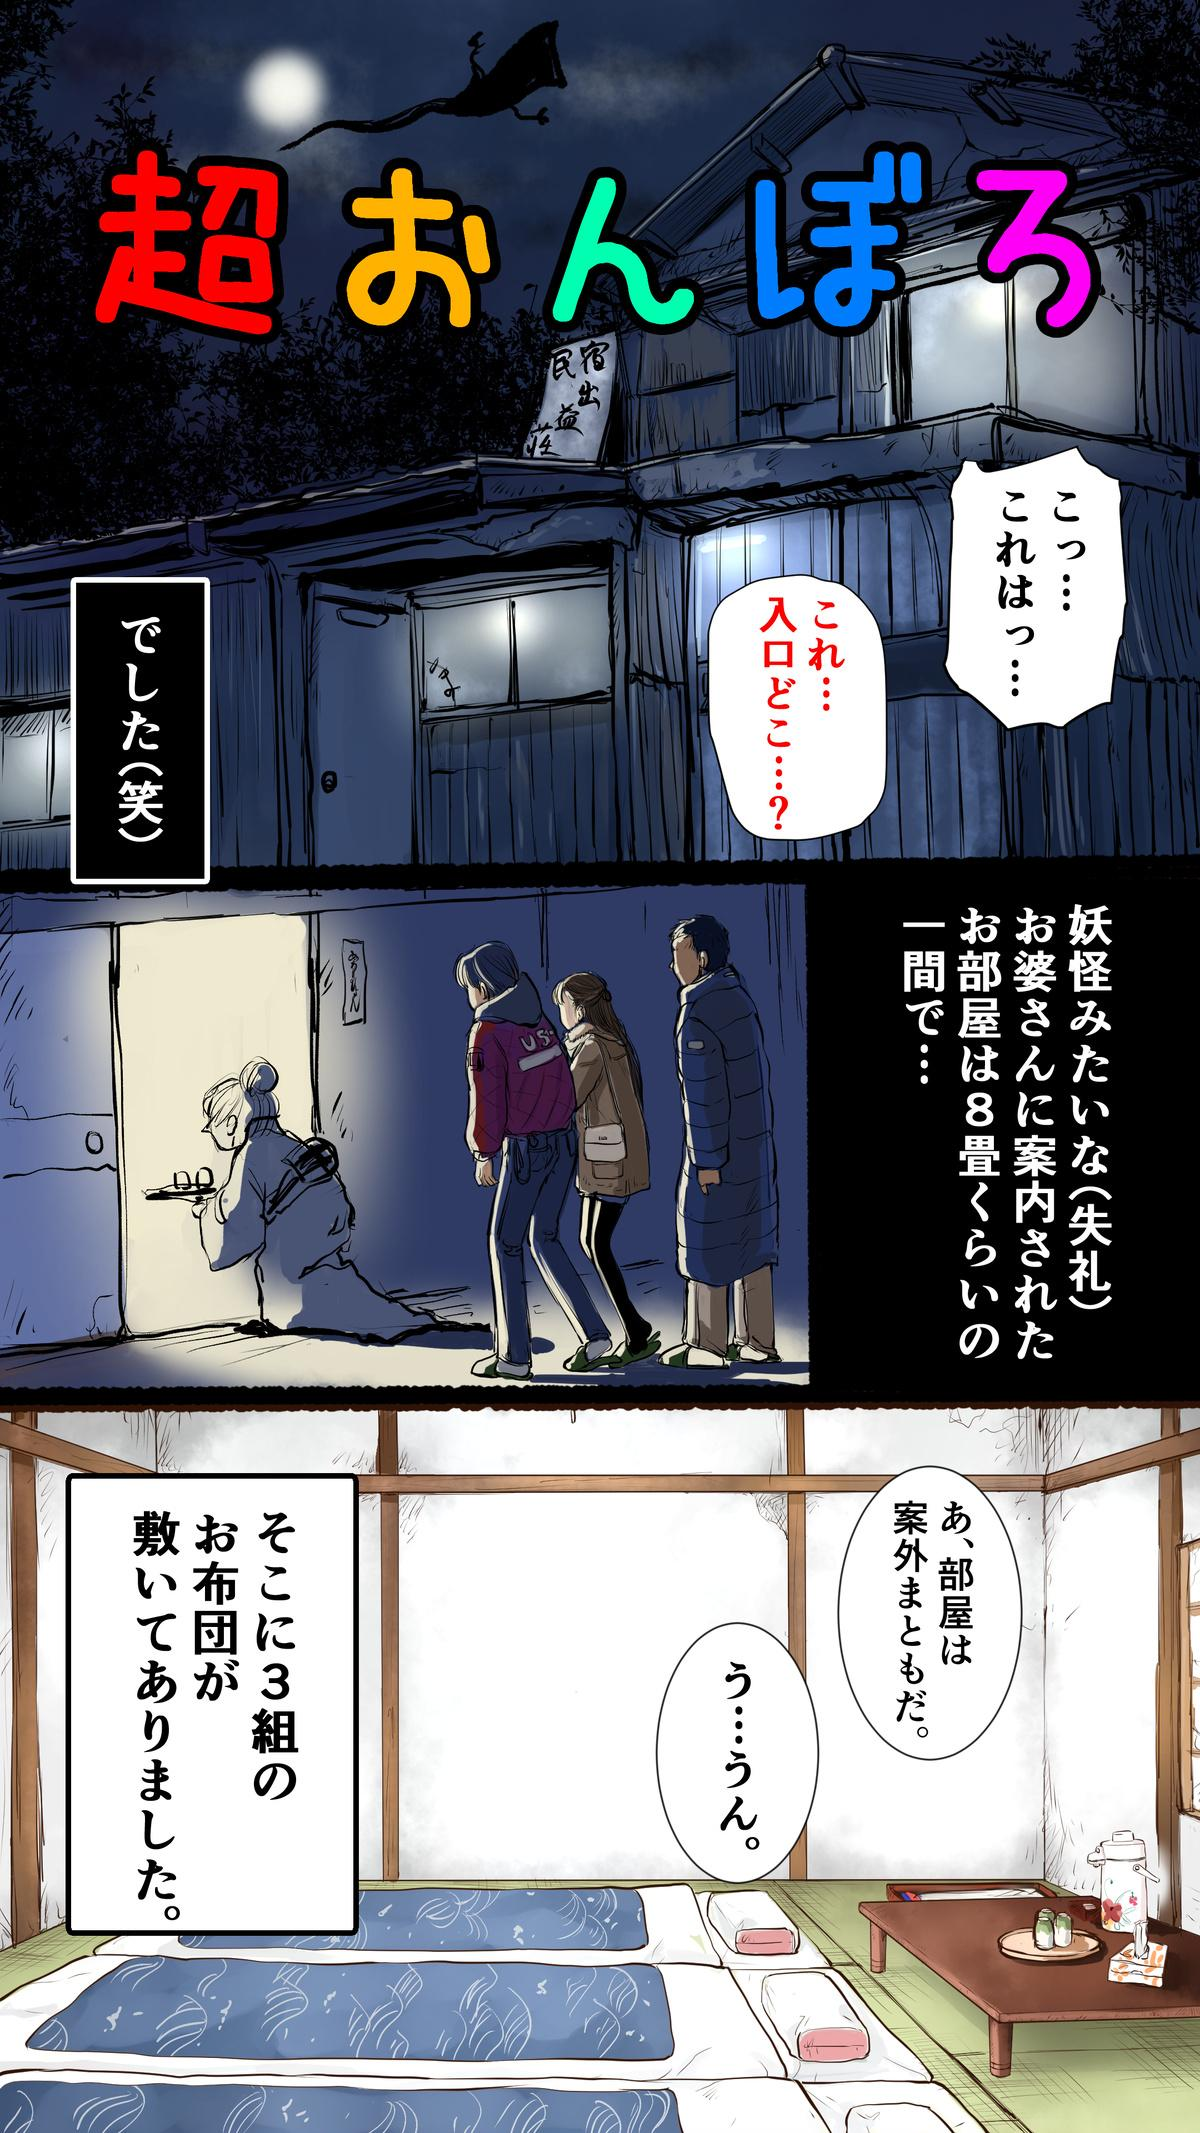 Story of Hot Spring Hotel 3